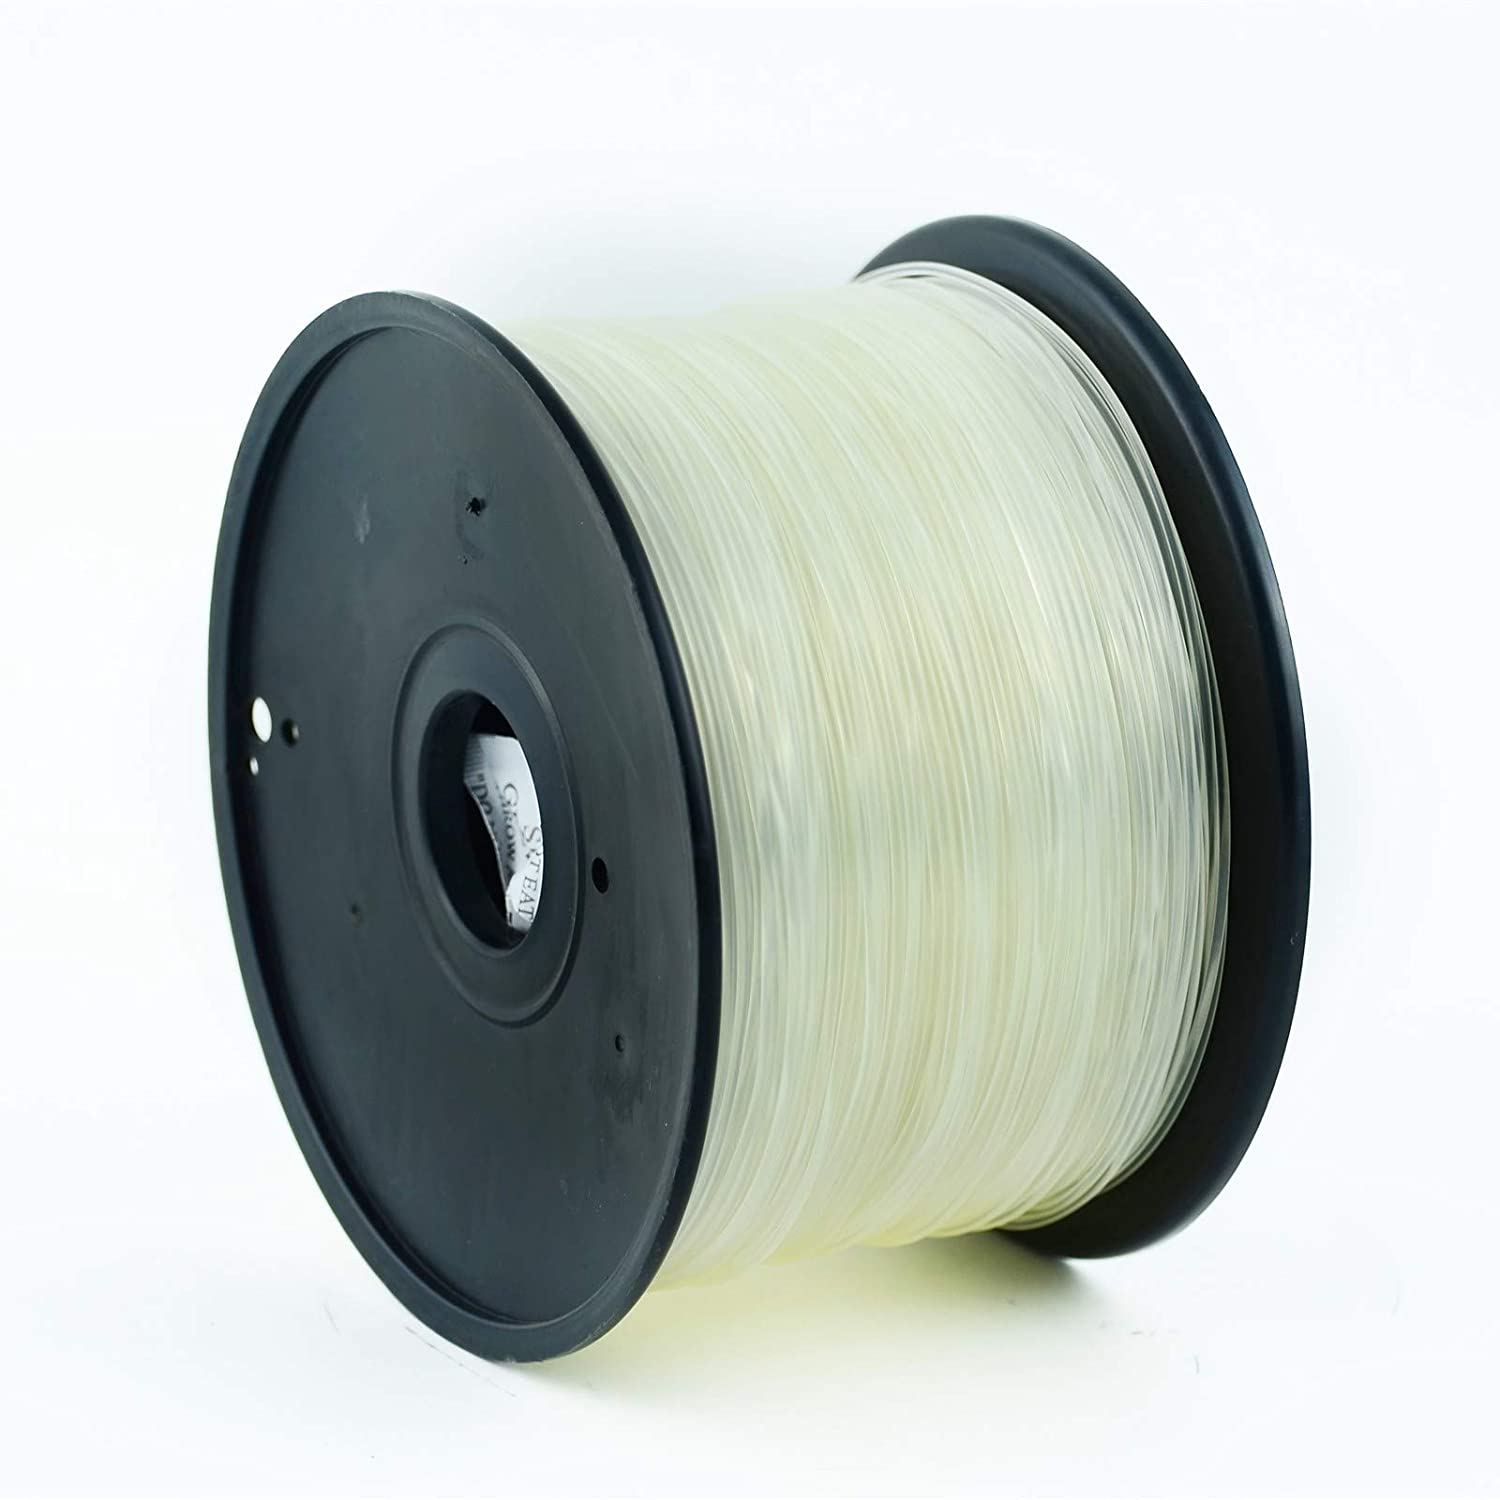 I-CHOOSE LIMITED Flashforge 3D Printing PLA Filament / 1.75mm / 600g Spool Roll/Black